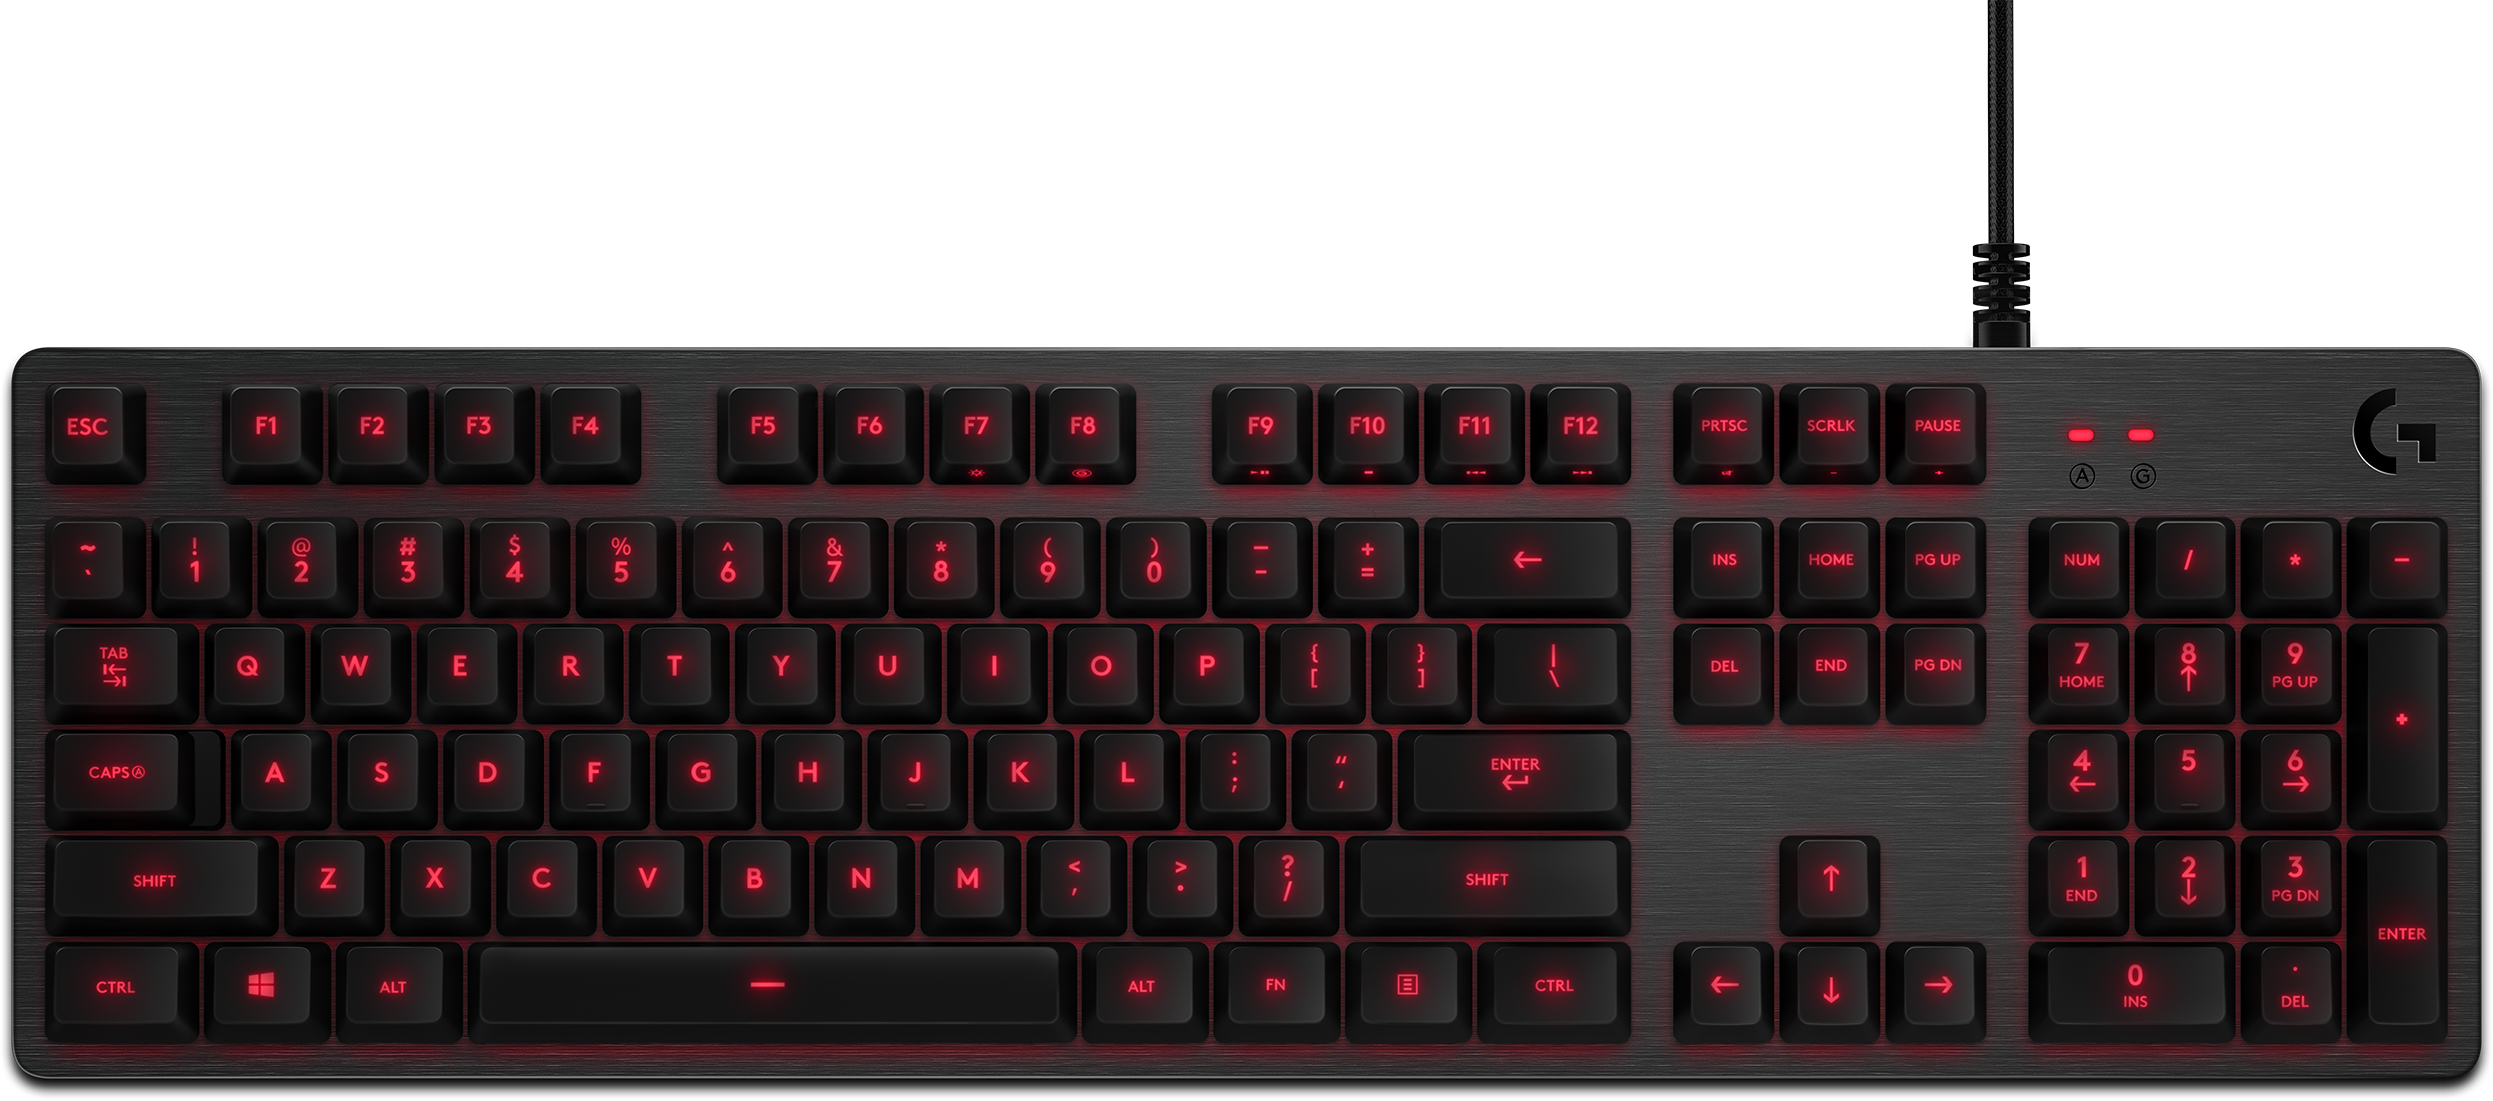 RE2PzB9?ver=5d9a - Logitech G413 Mechanical Gaming Keyboard